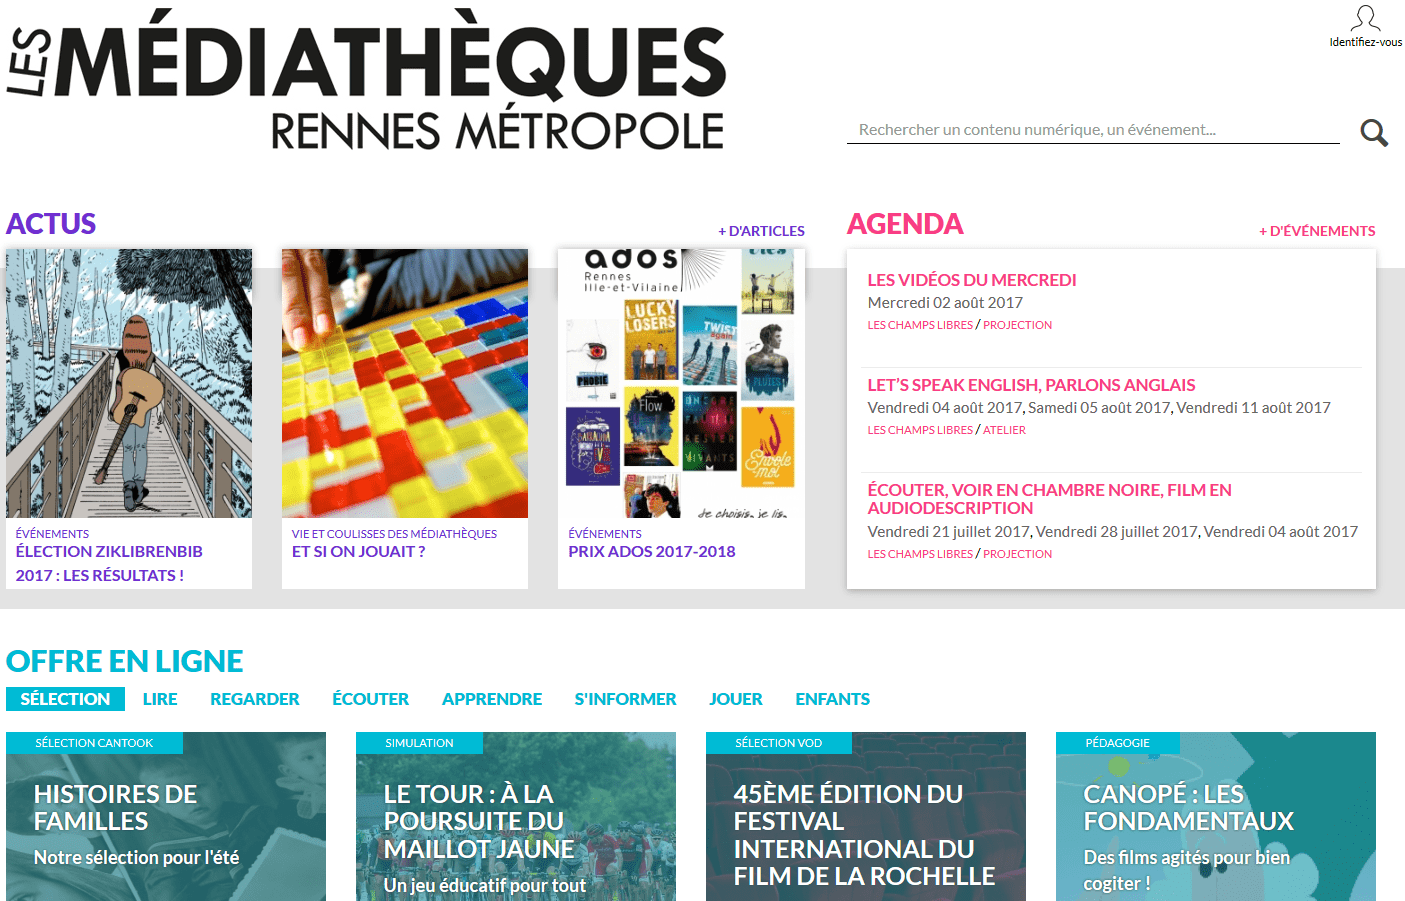 mediatheques_rennes1-min